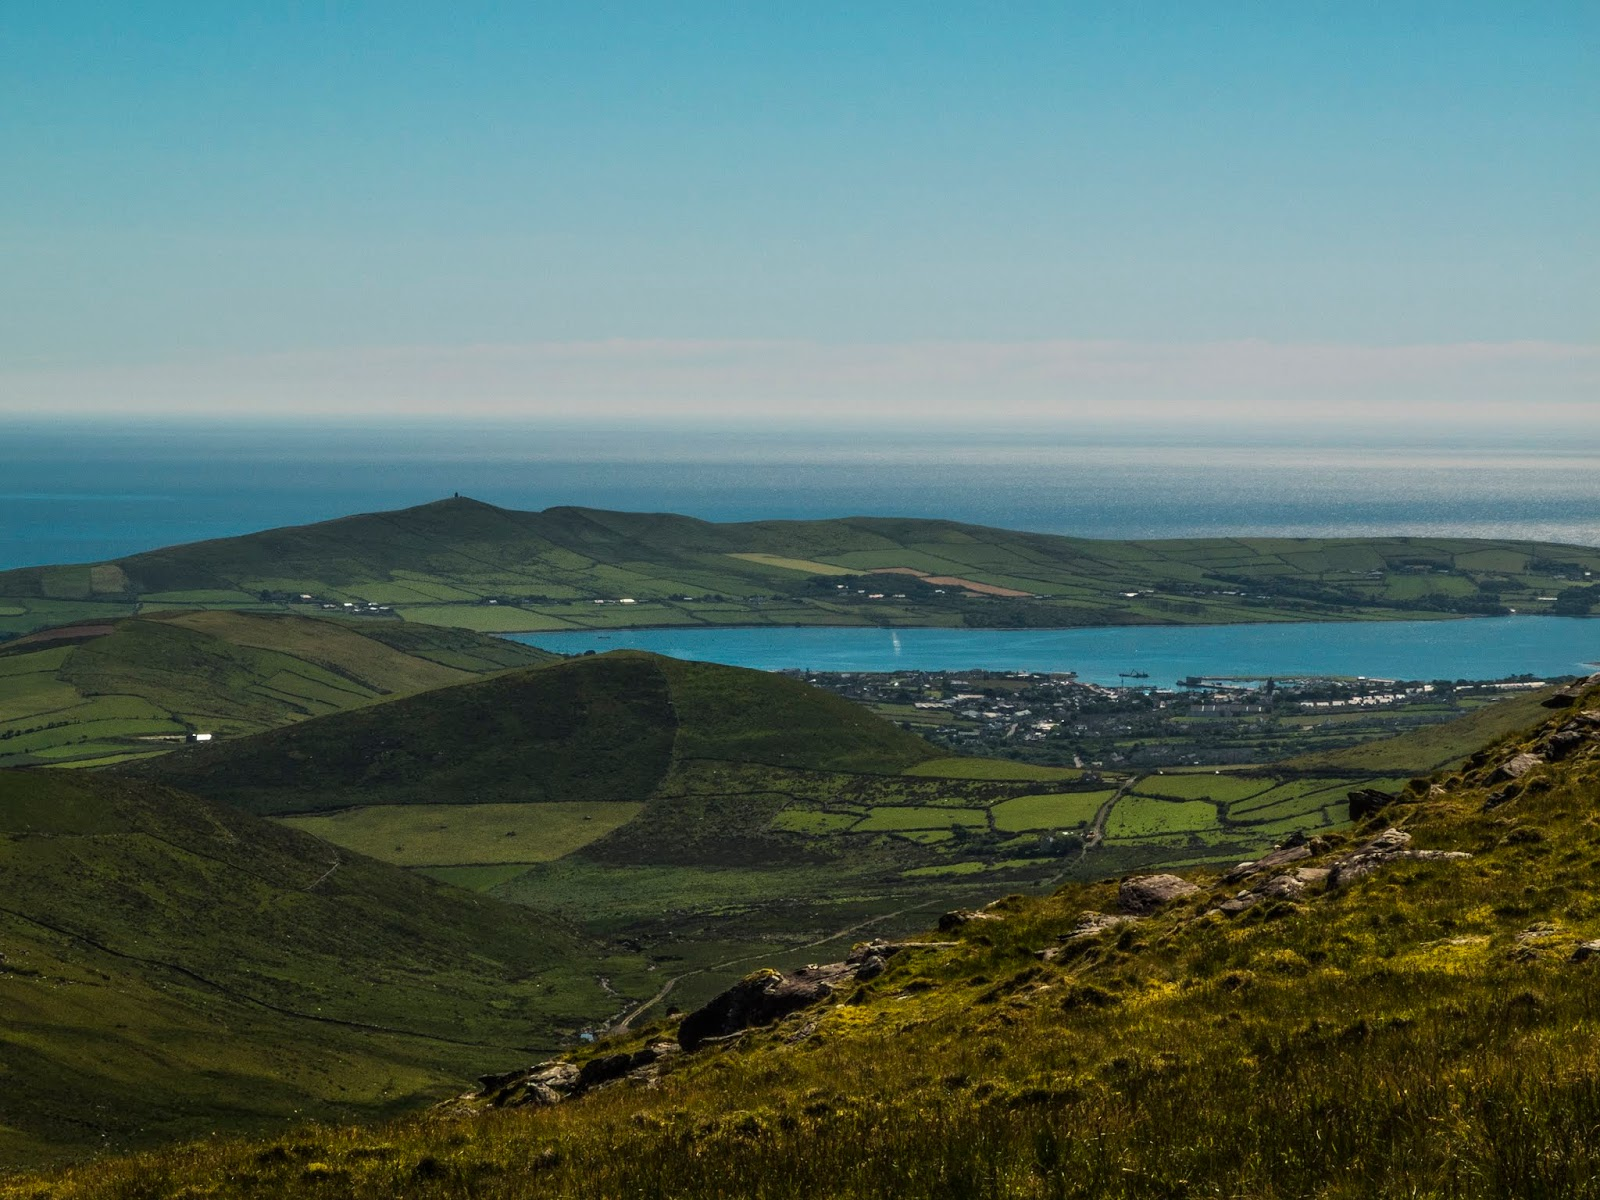 View of Dingle from Conor Pass in Co.Kerry on a sunny day with blue skies.